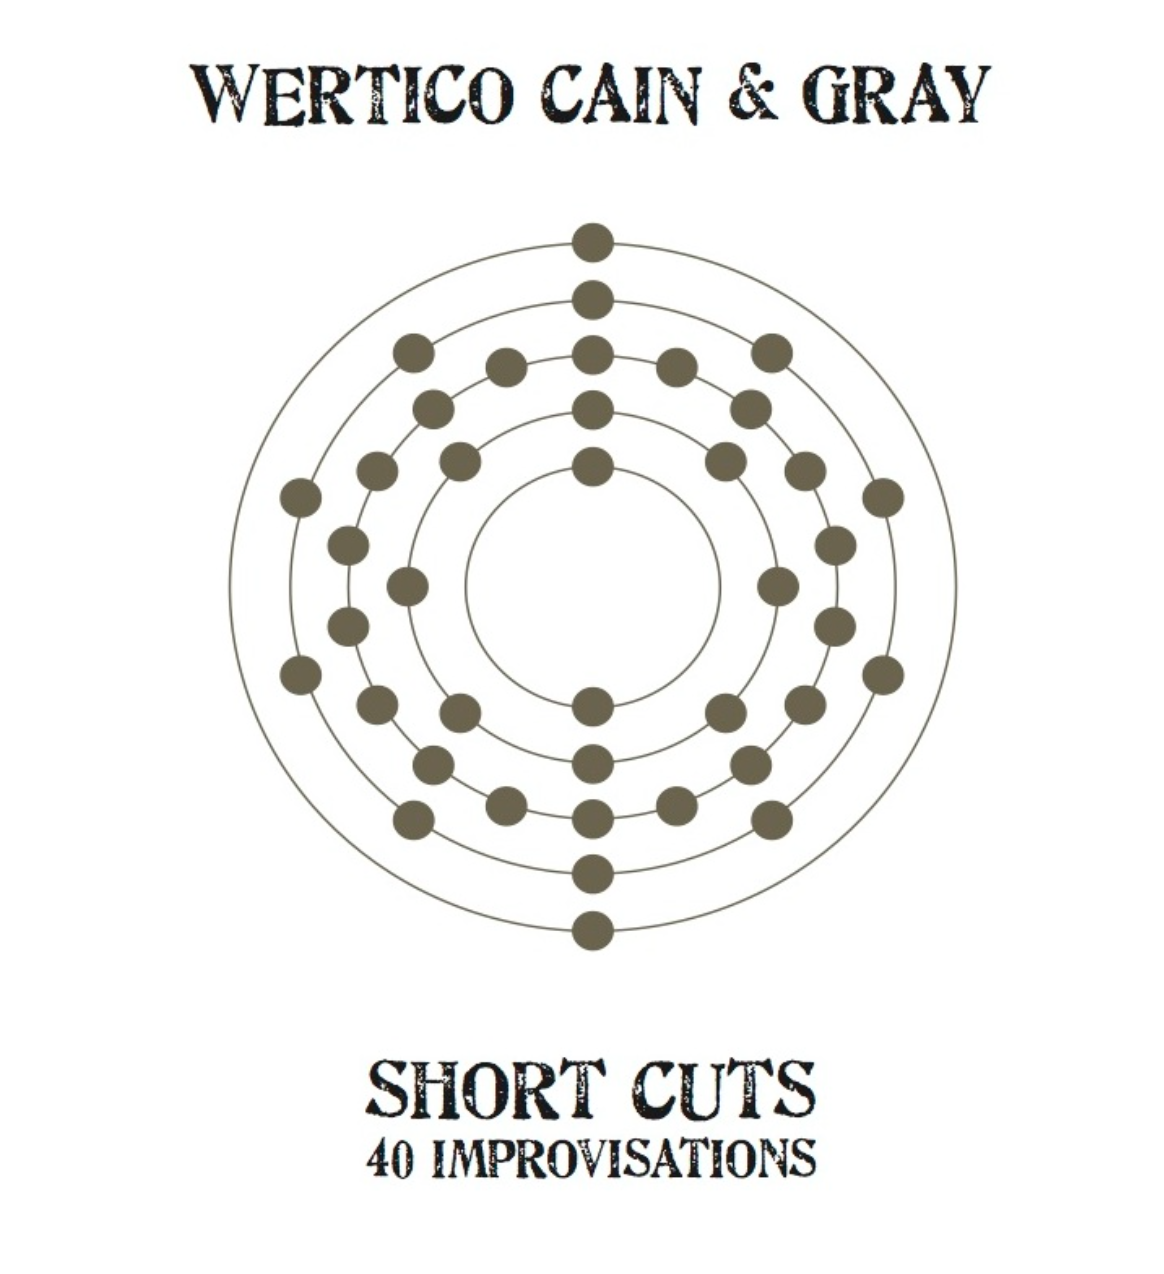 Wertico Cain and Gray Short Cuts